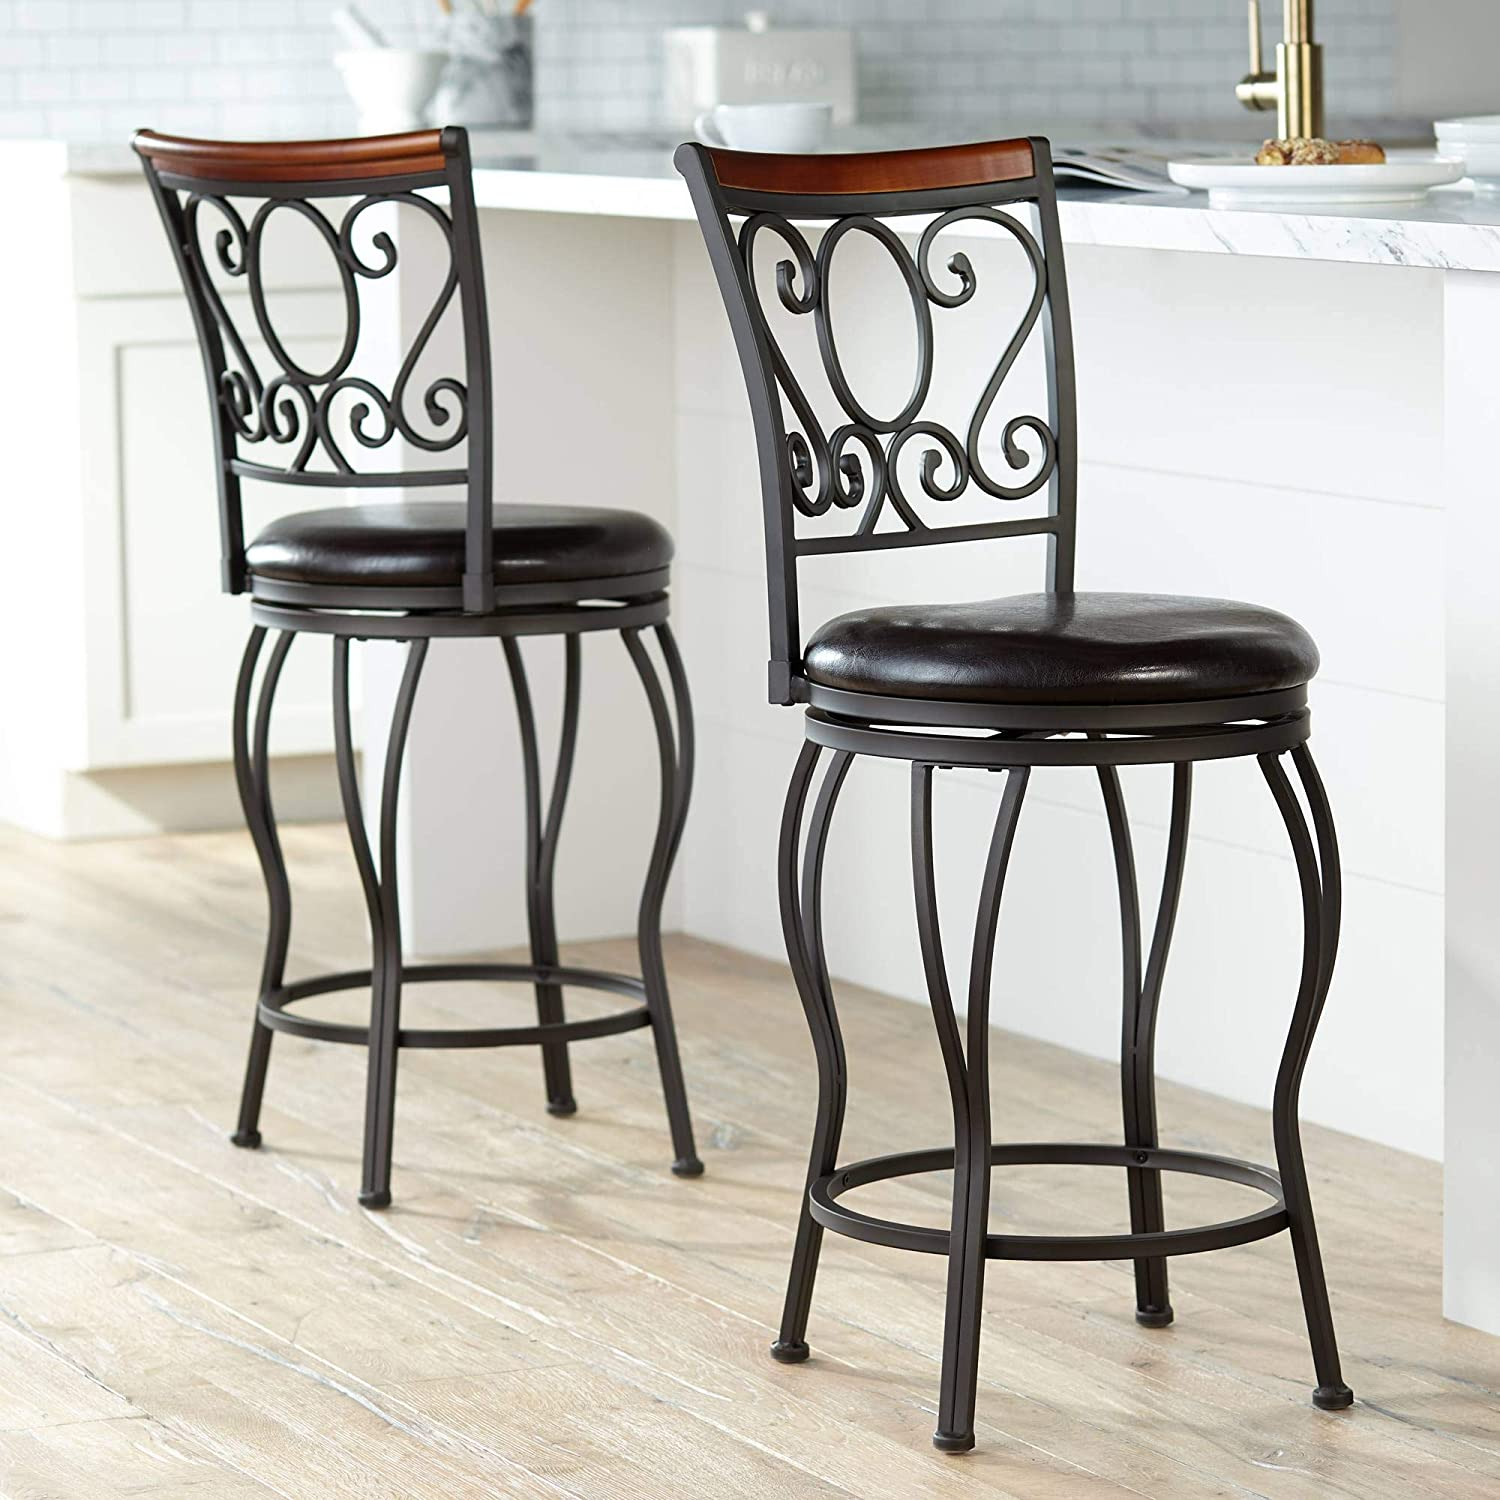 Alberta 24 High Swivel Counter Stools Set of 2